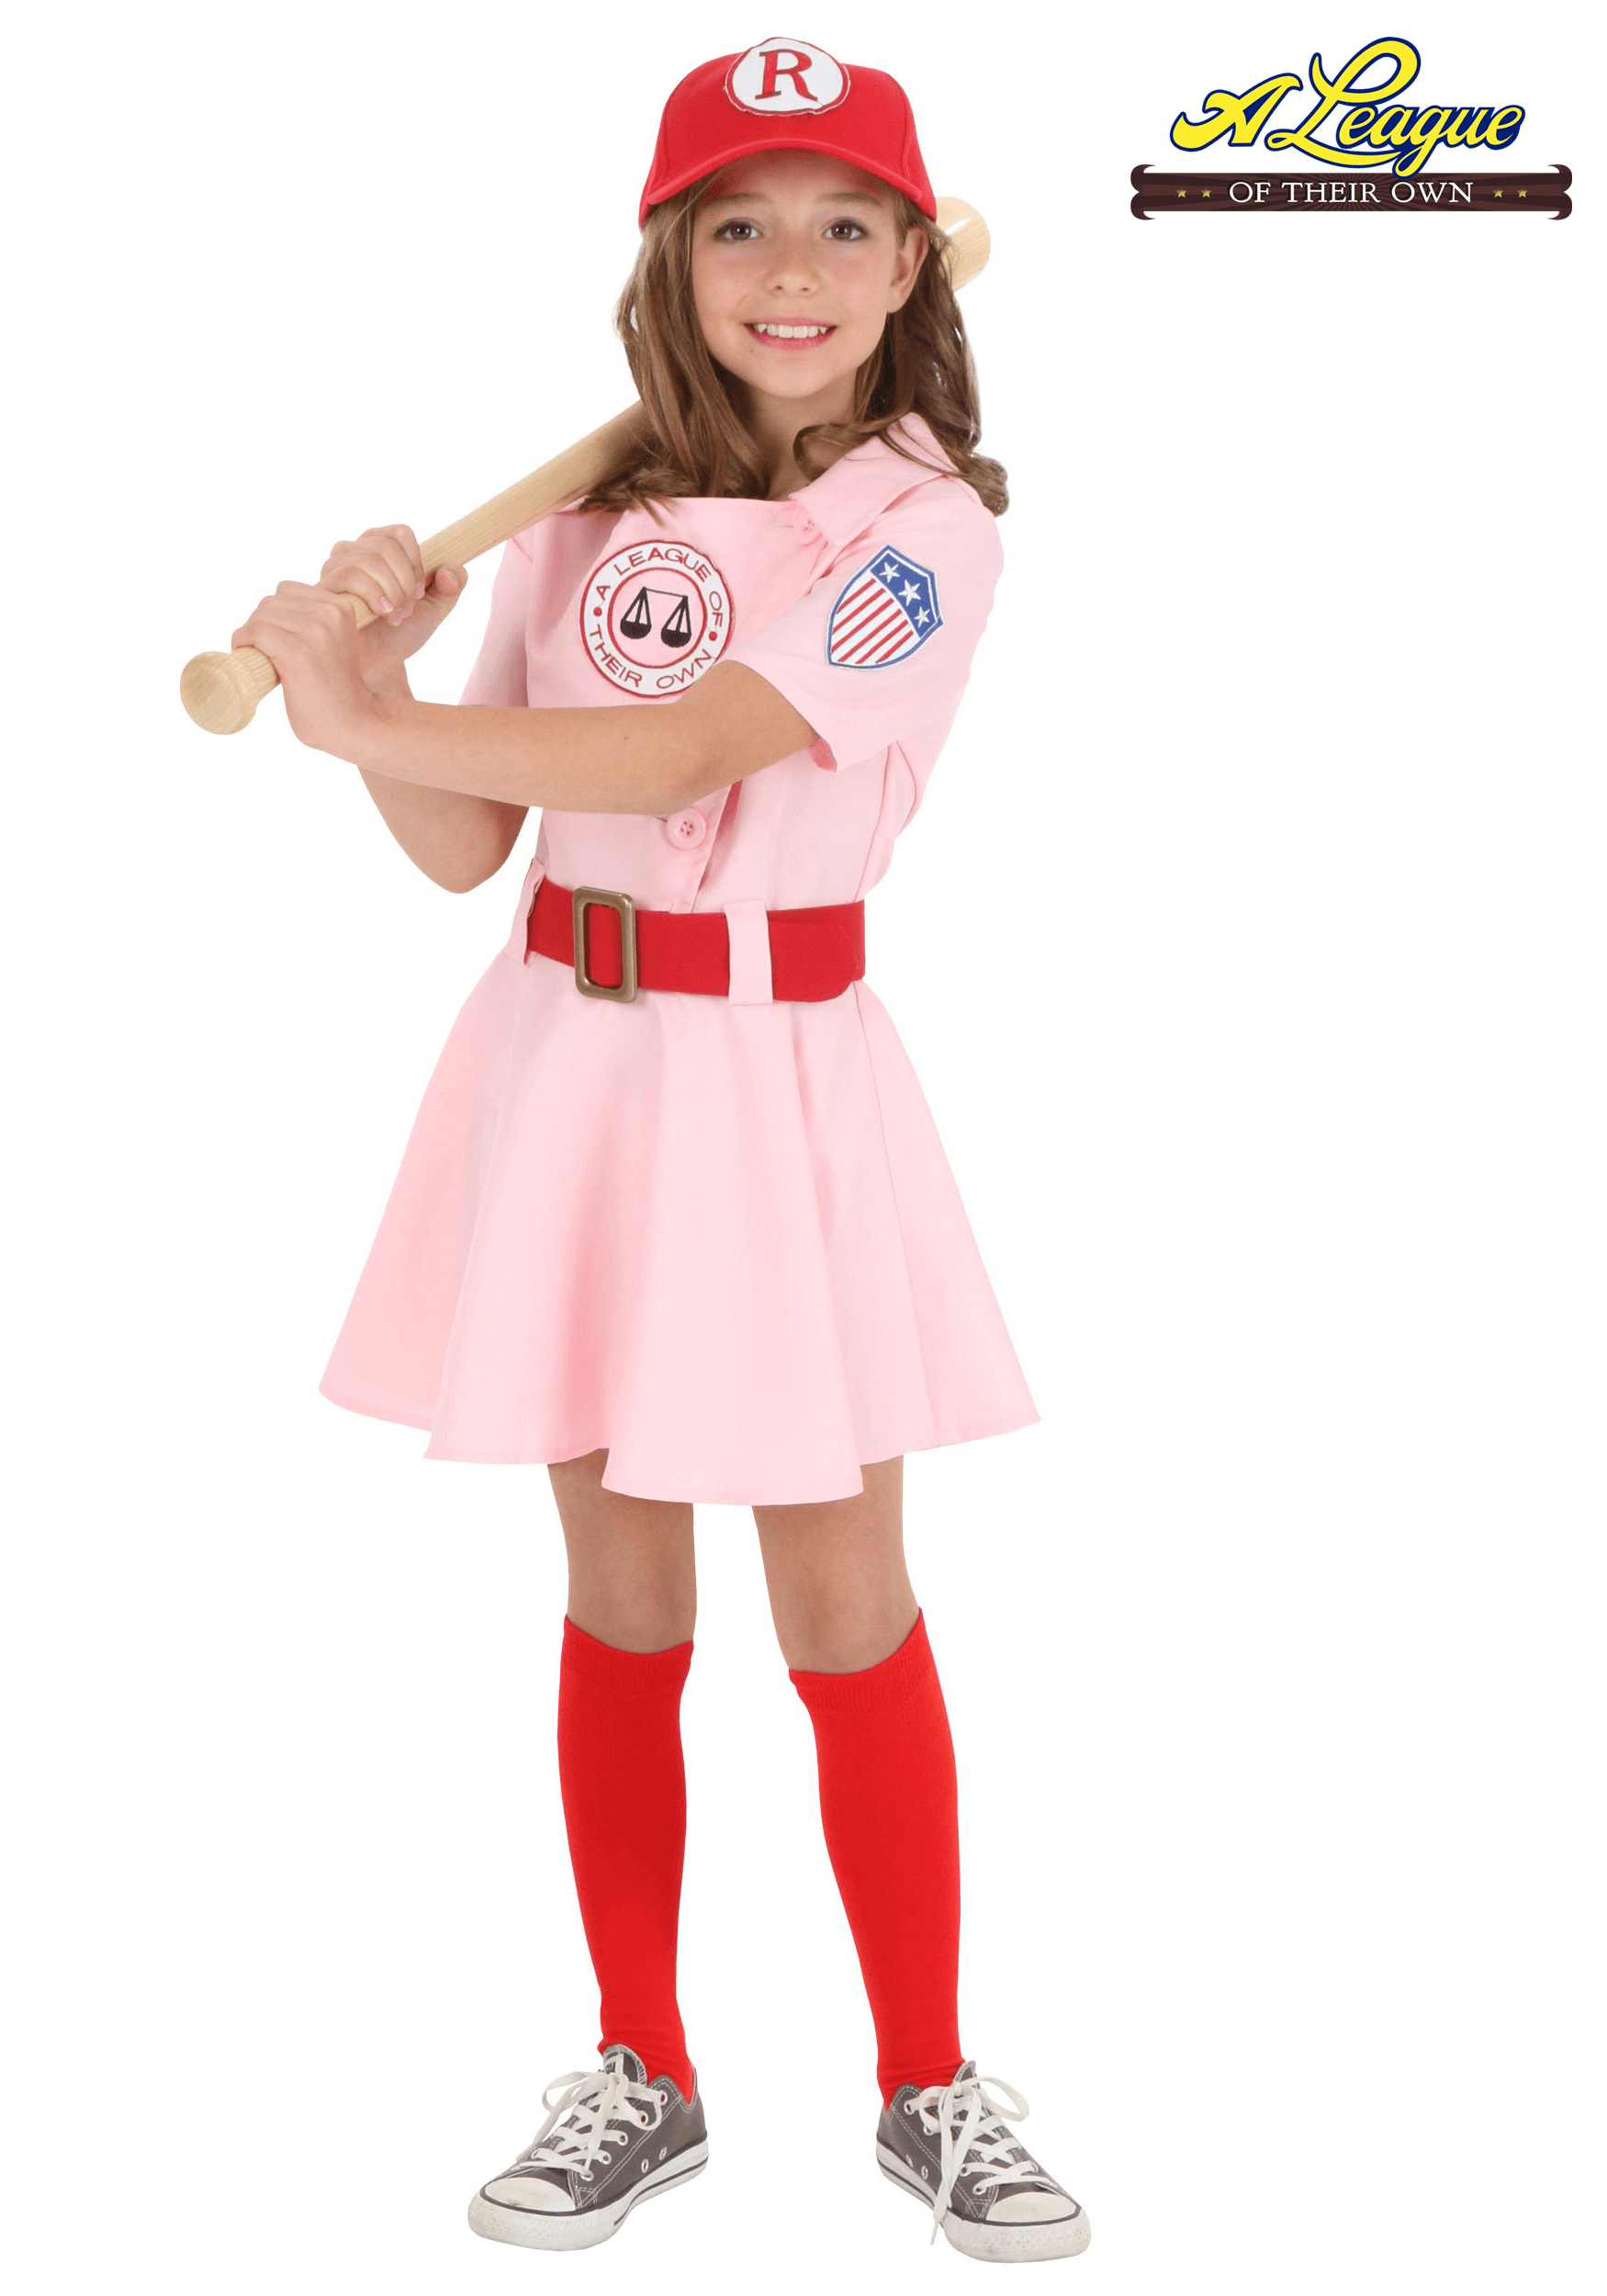 Sports halloween costumes uniforms halloweencostumes child a league of their own dottie costume solutioingenieria Images